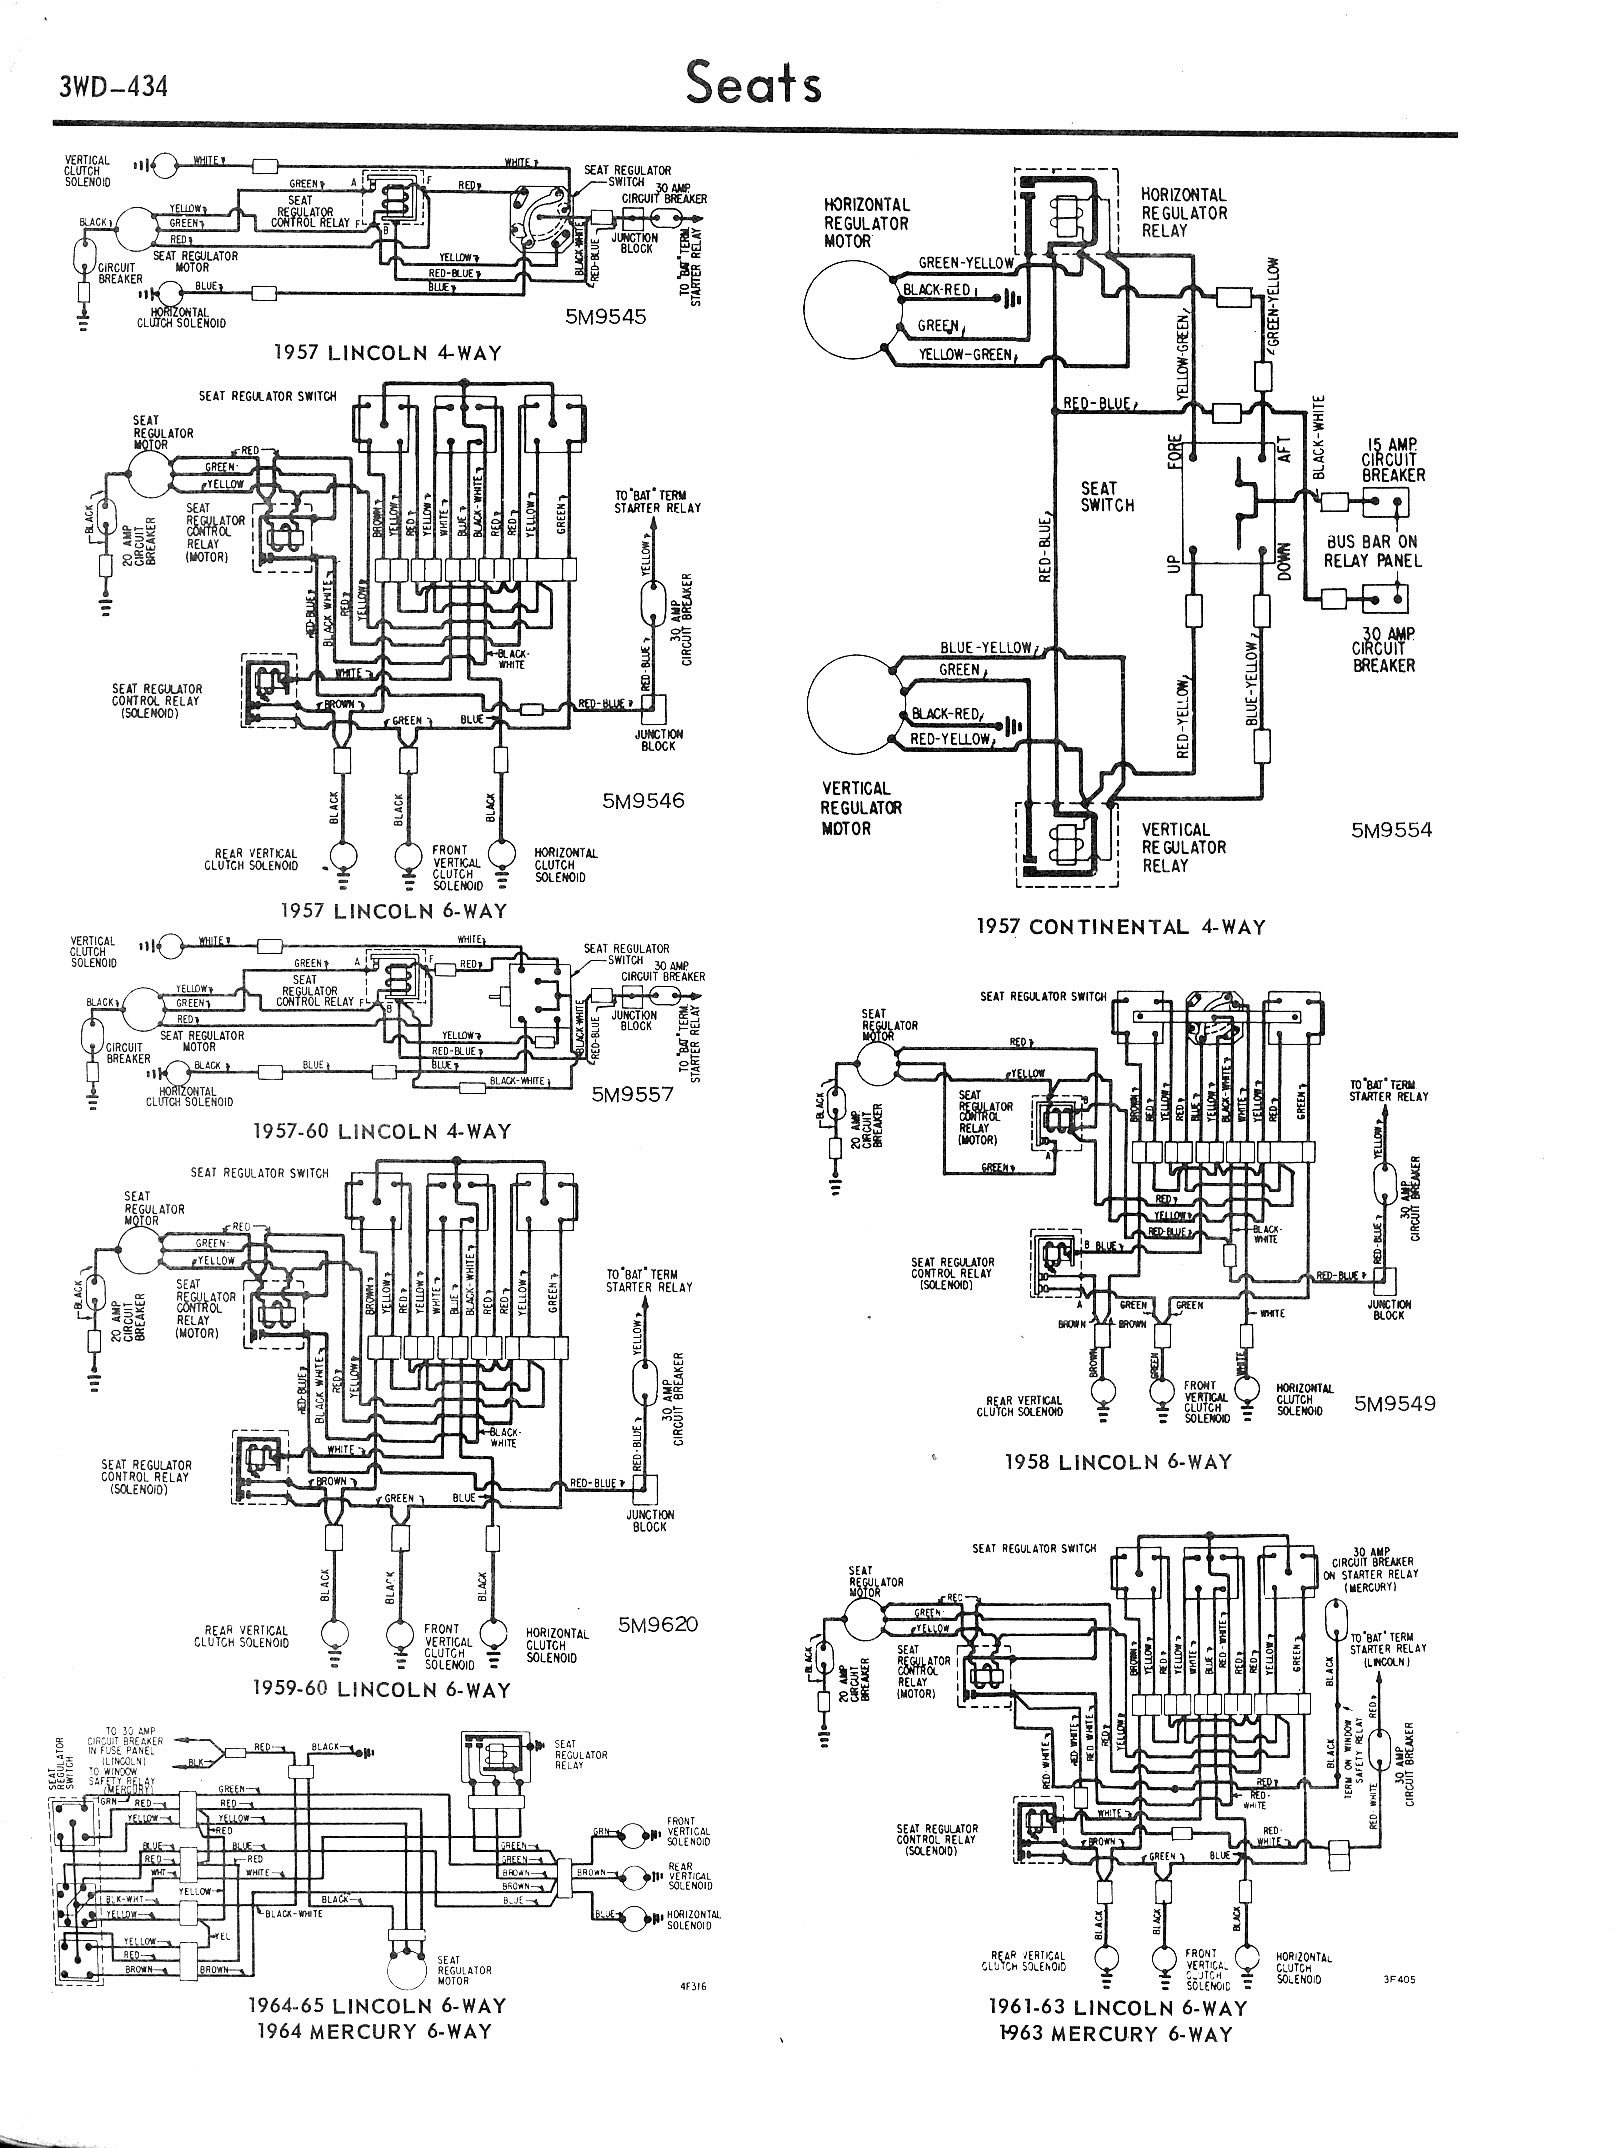 Ford Diagrams 1983 Lincoln Continental Wiring Diagram 57 65 4 Way 6 63 64 Mercury